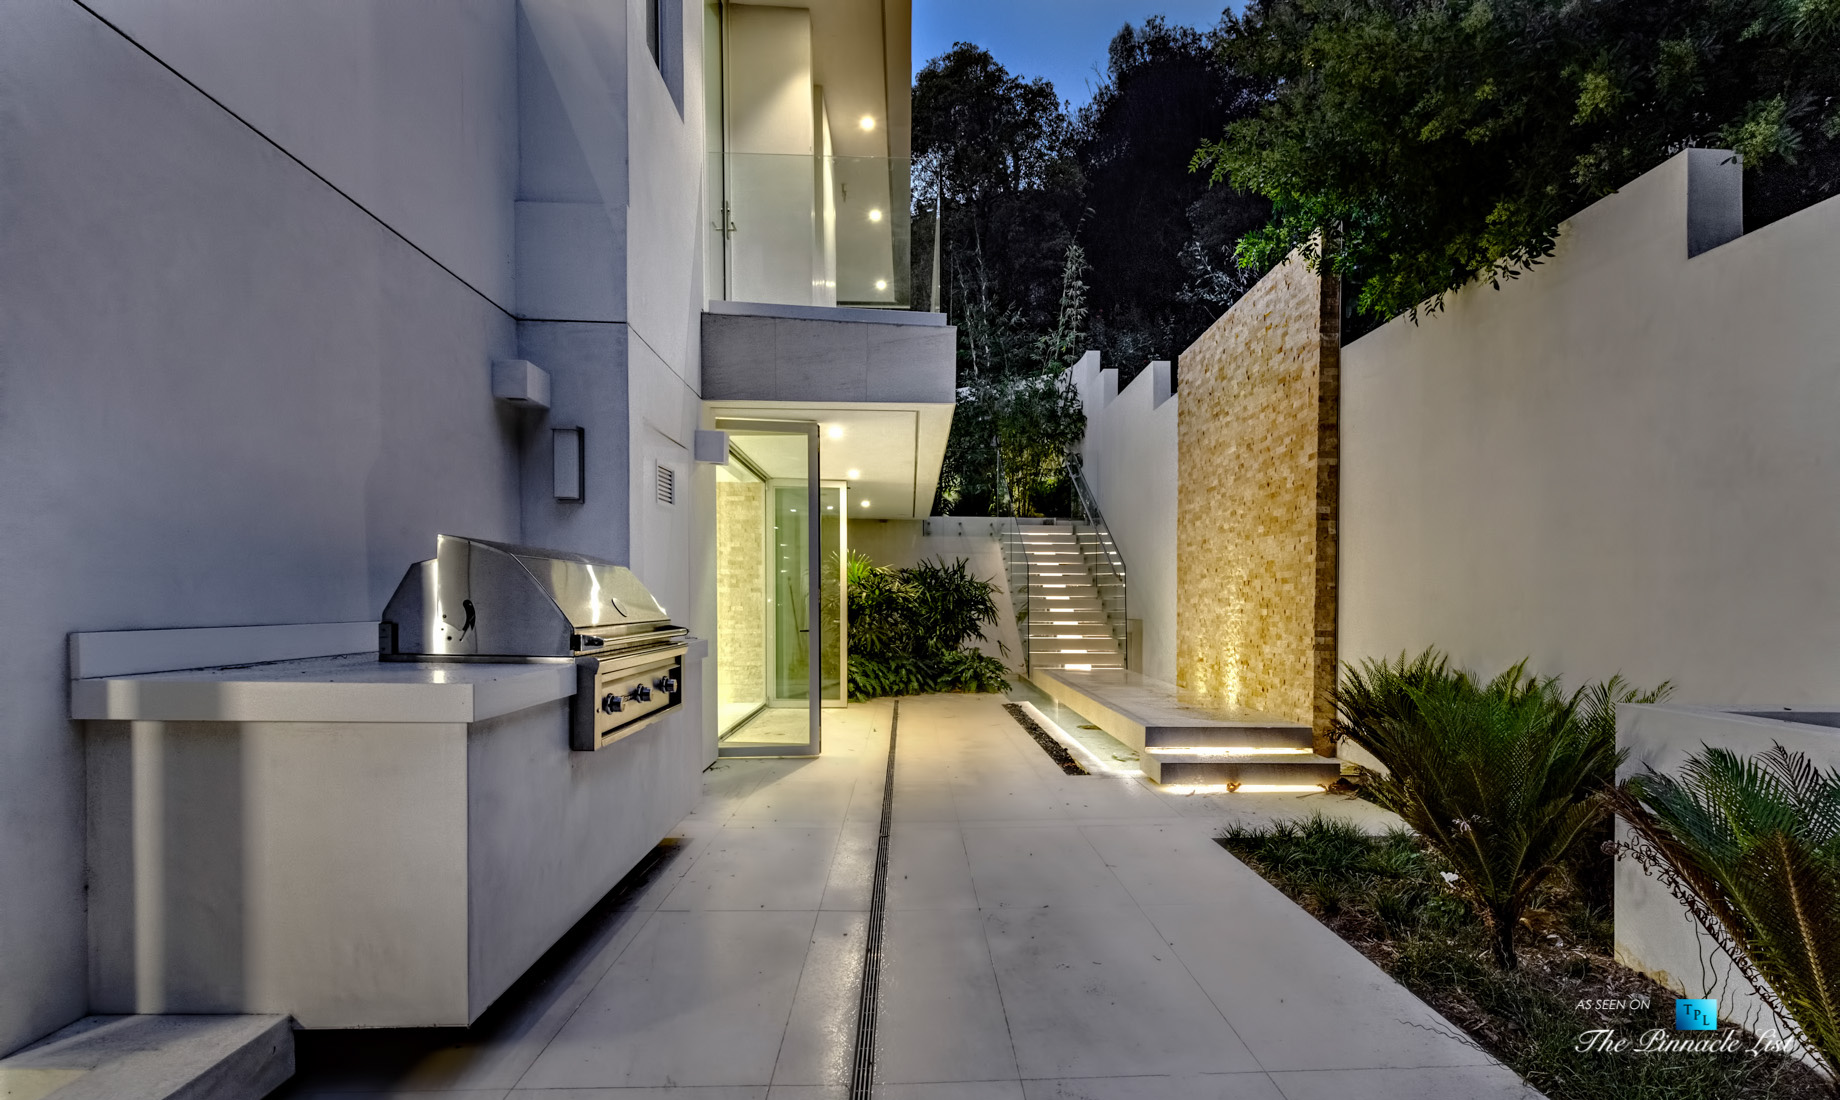 9311 Readcrest Dr, Beverly Hills, CA, USA